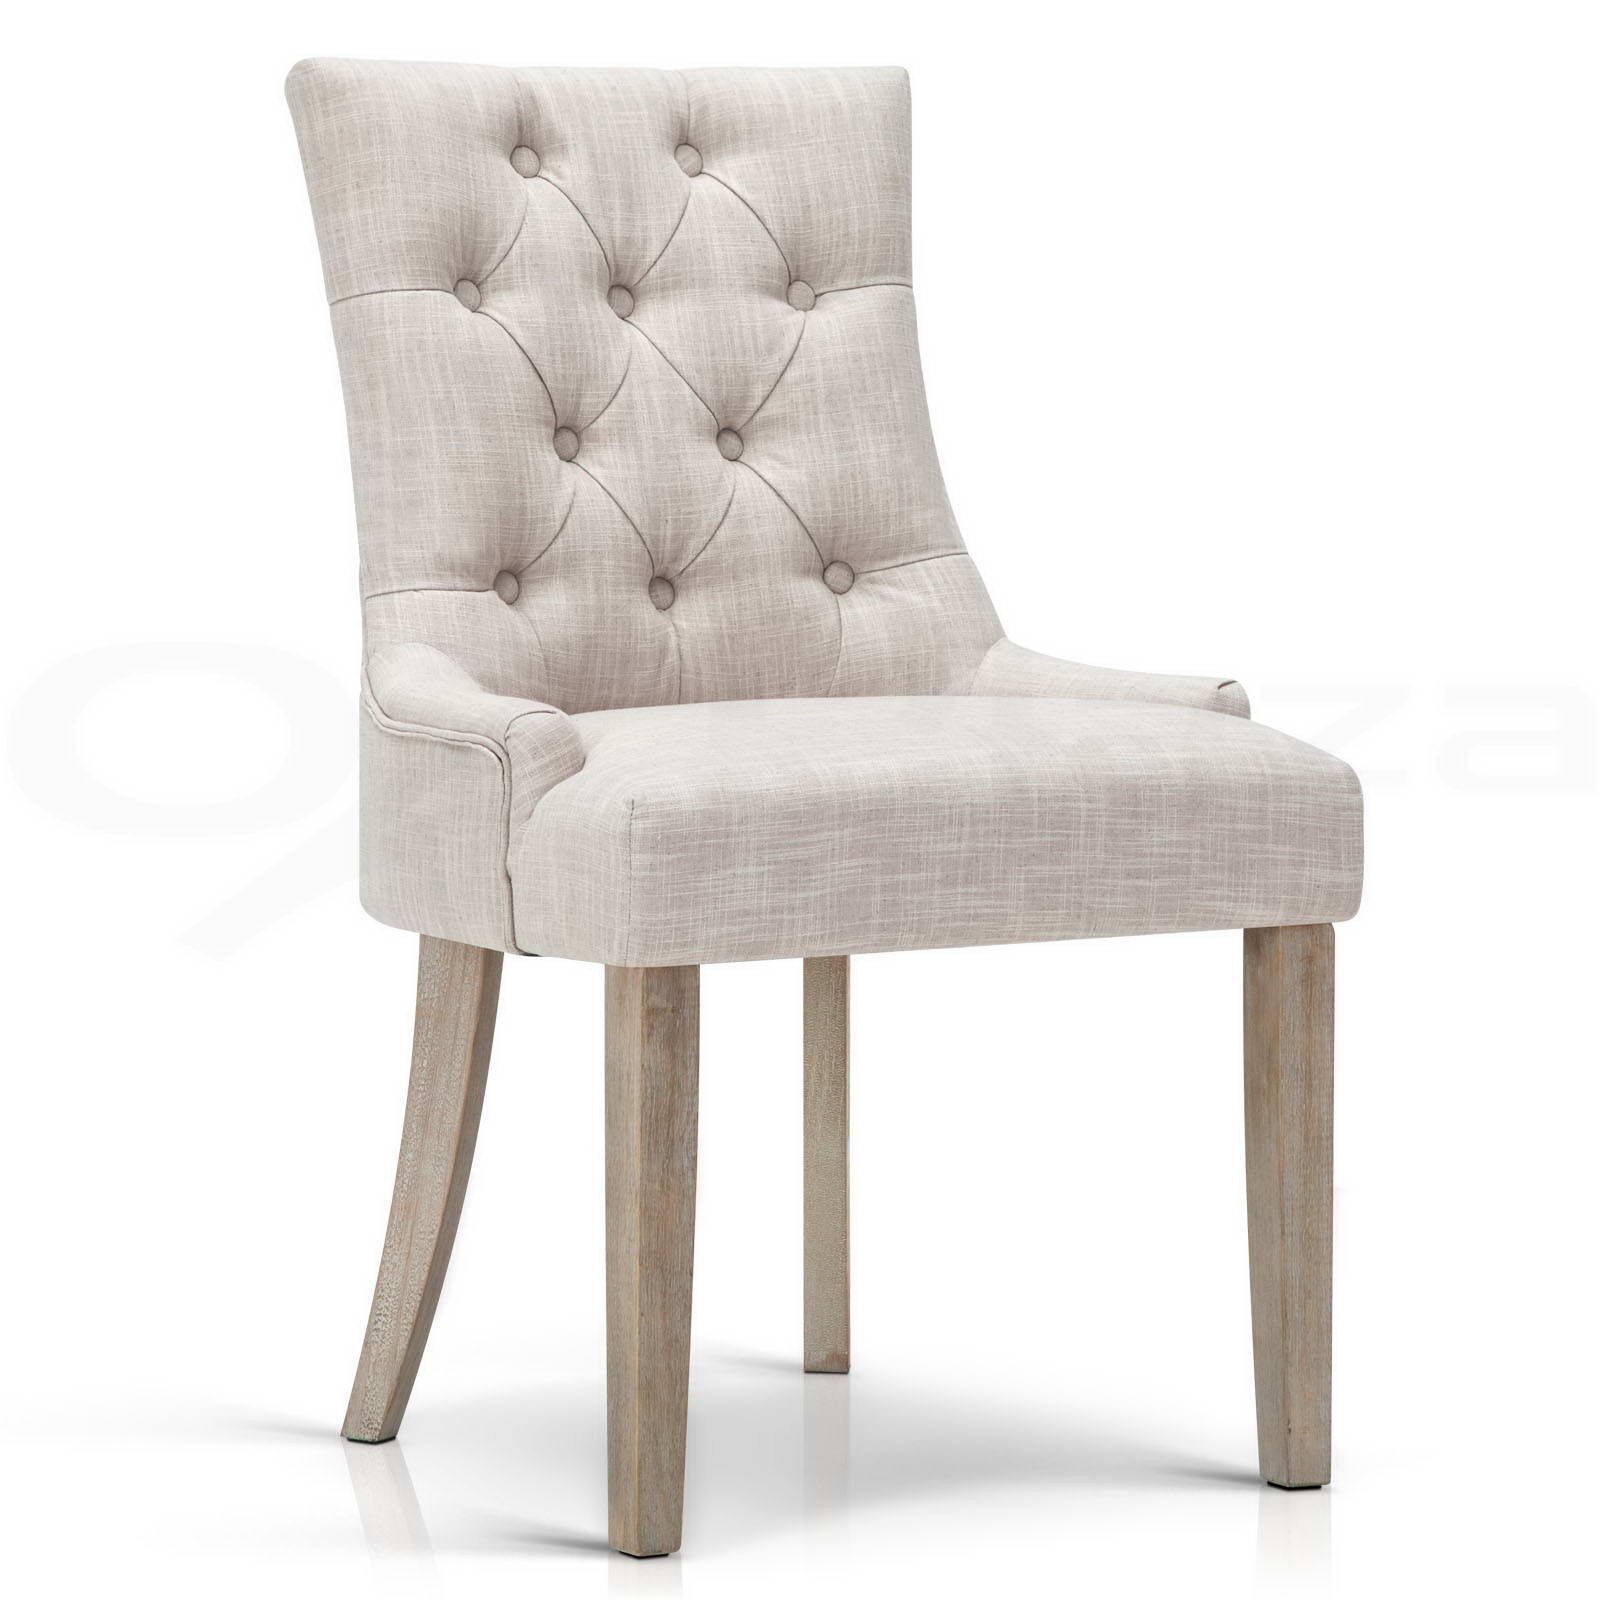 linen dining chair covers australia costco lounge cayes fabric french provincial wood